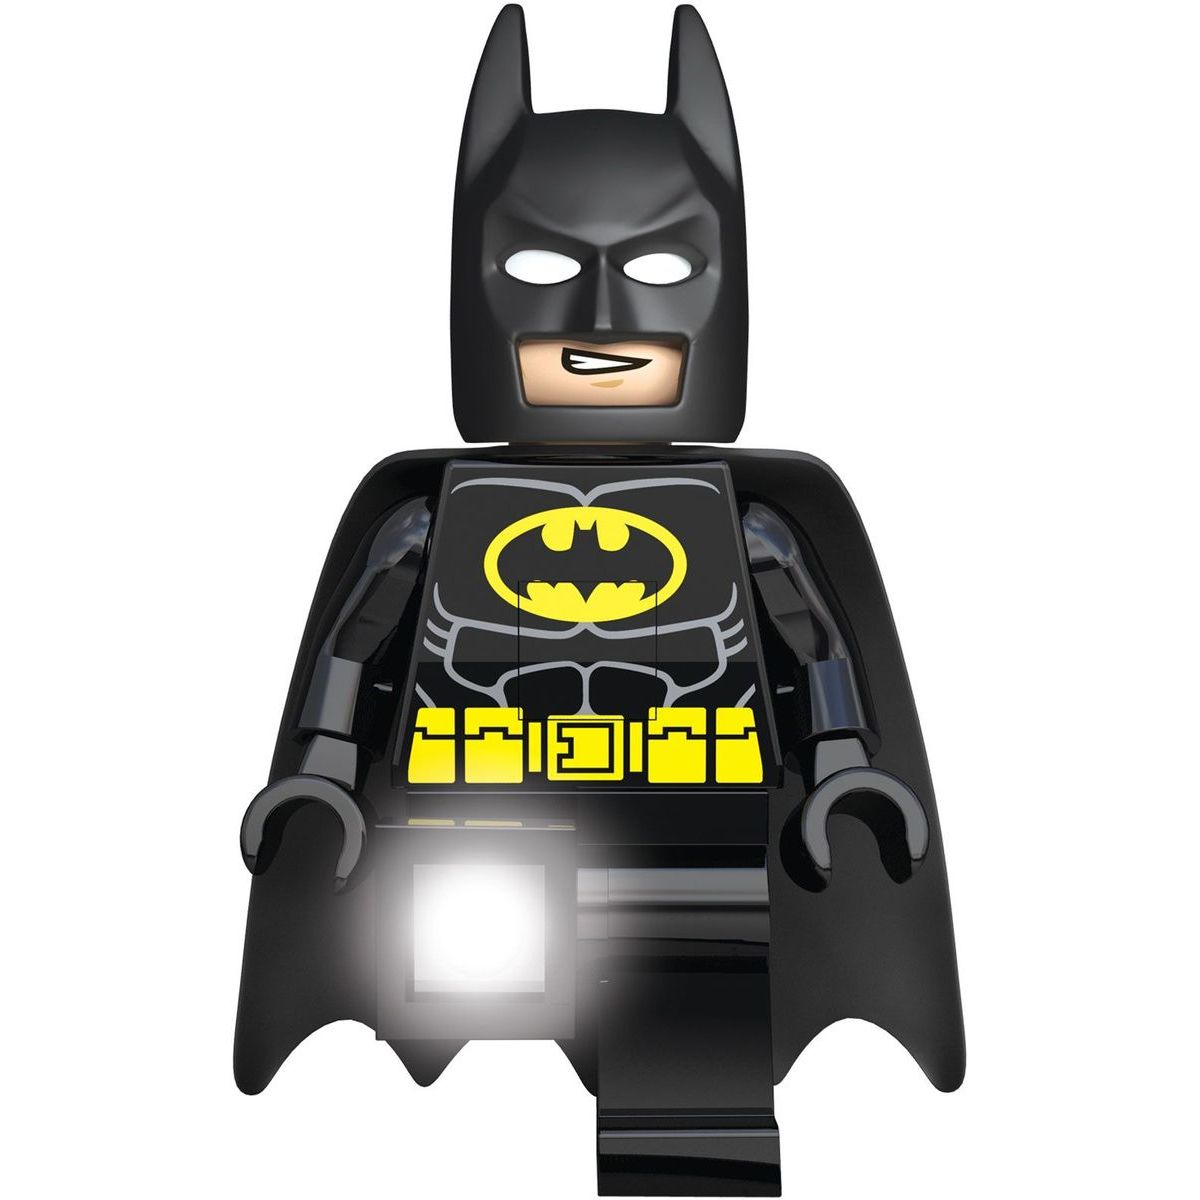 LEGO Batman Movie Batman baterka se svítícíma očima